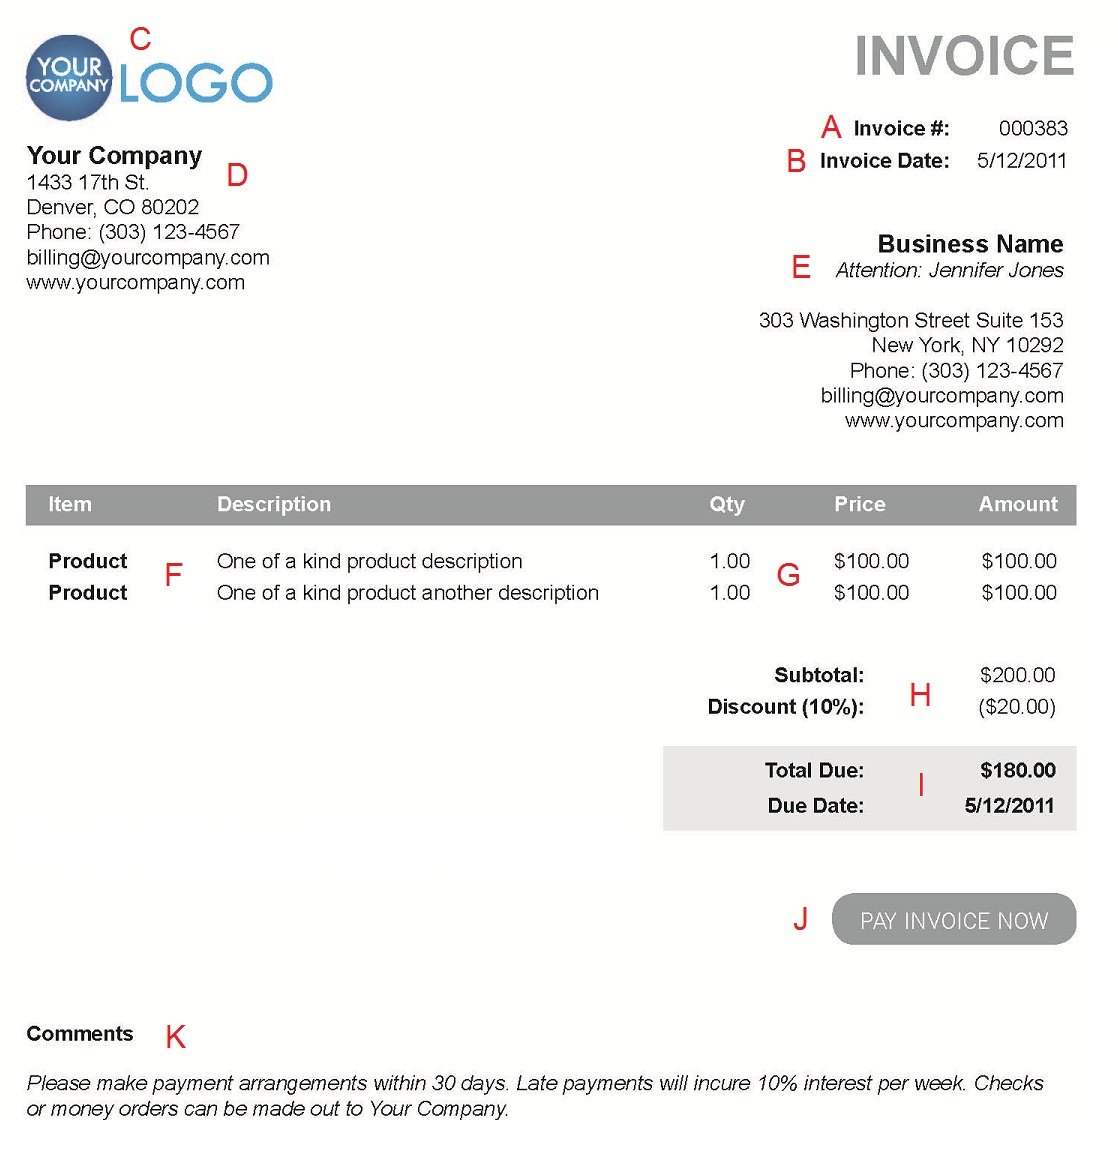 Helpingtohealus  Mesmerizing The  Different Sections Of An Electronic Payment Invoice With Lovely A  With Adorable Invoices Program Also Quote Invoice Template In Addition Canadian Customs Invoice Instructions And Download Excel Invoice Template As Well As How To Submit An Invoice Additionally Quickbooks Invoicing Tutorial From Paysimplecom With Helpingtohealus  Lovely The  Different Sections Of An Electronic Payment Invoice With Adorable A  And Mesmerizing Invoices Program Also Quote Invoice Template In Addition Canadian Customs Invoice Instructions From Paysimplecom